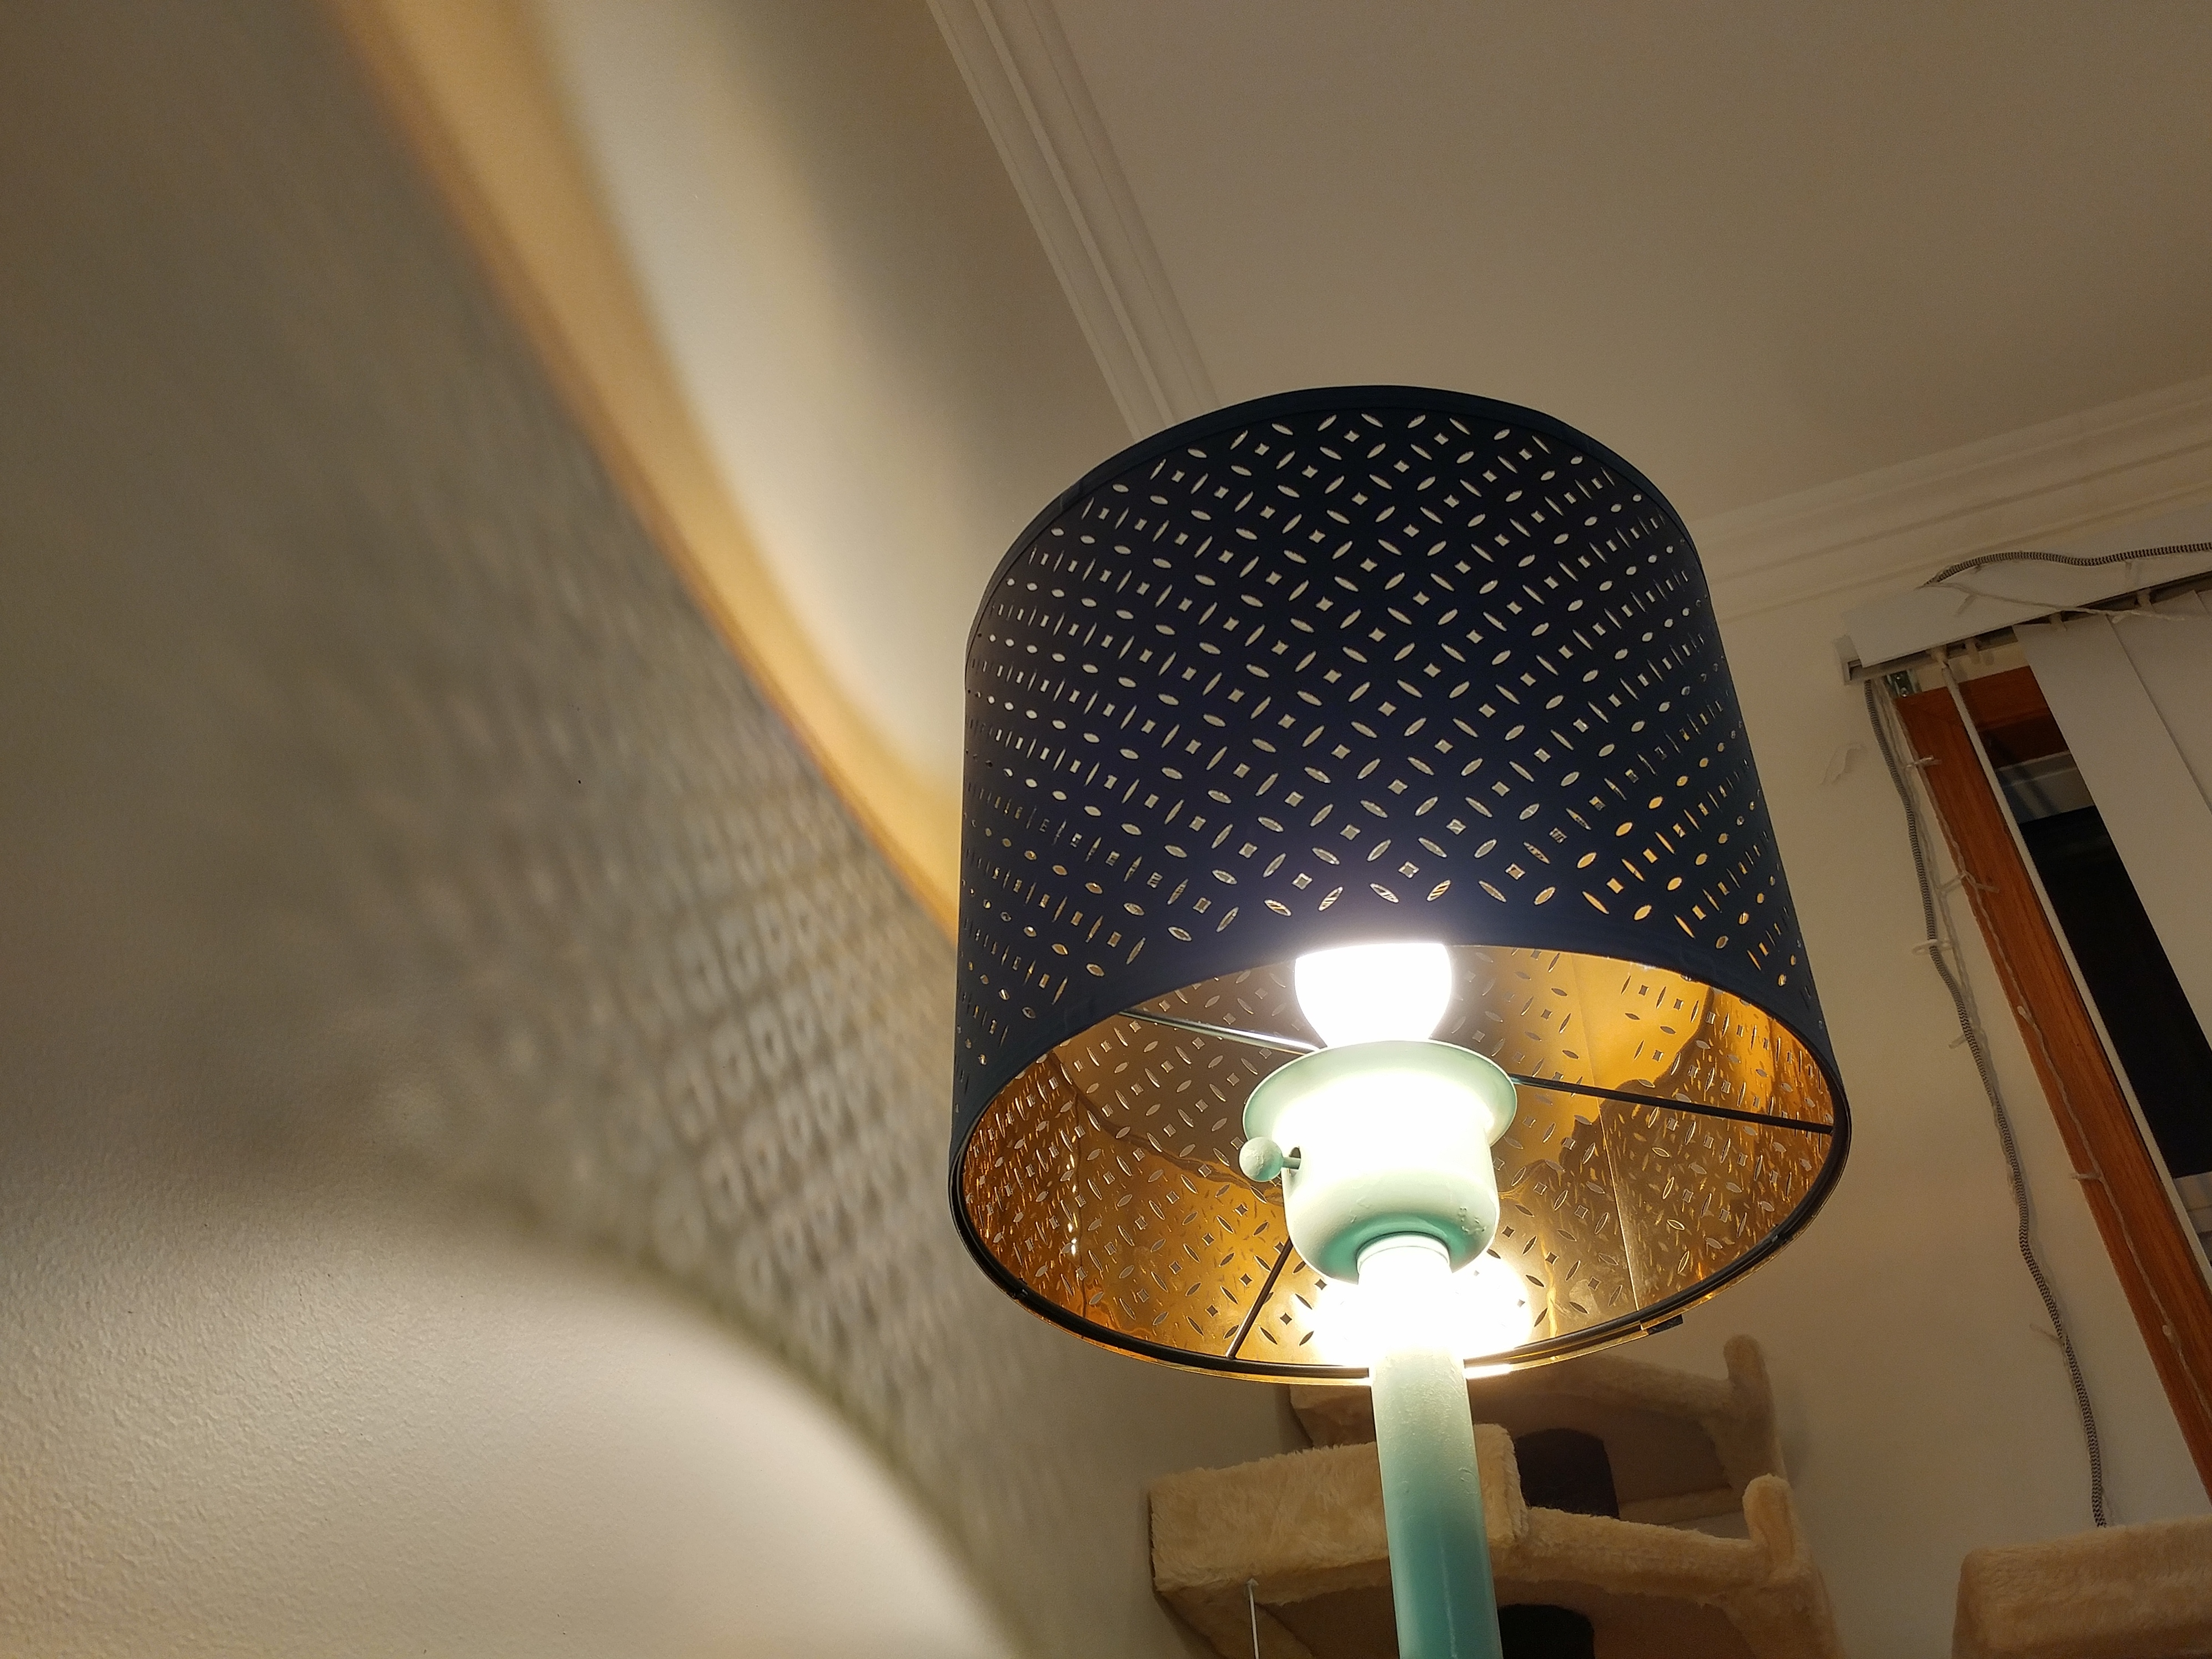 Ikea Lampe Gold Ikea NymÖ Lamp Shade Reviews In Lighting & Fans - Chickadvisor